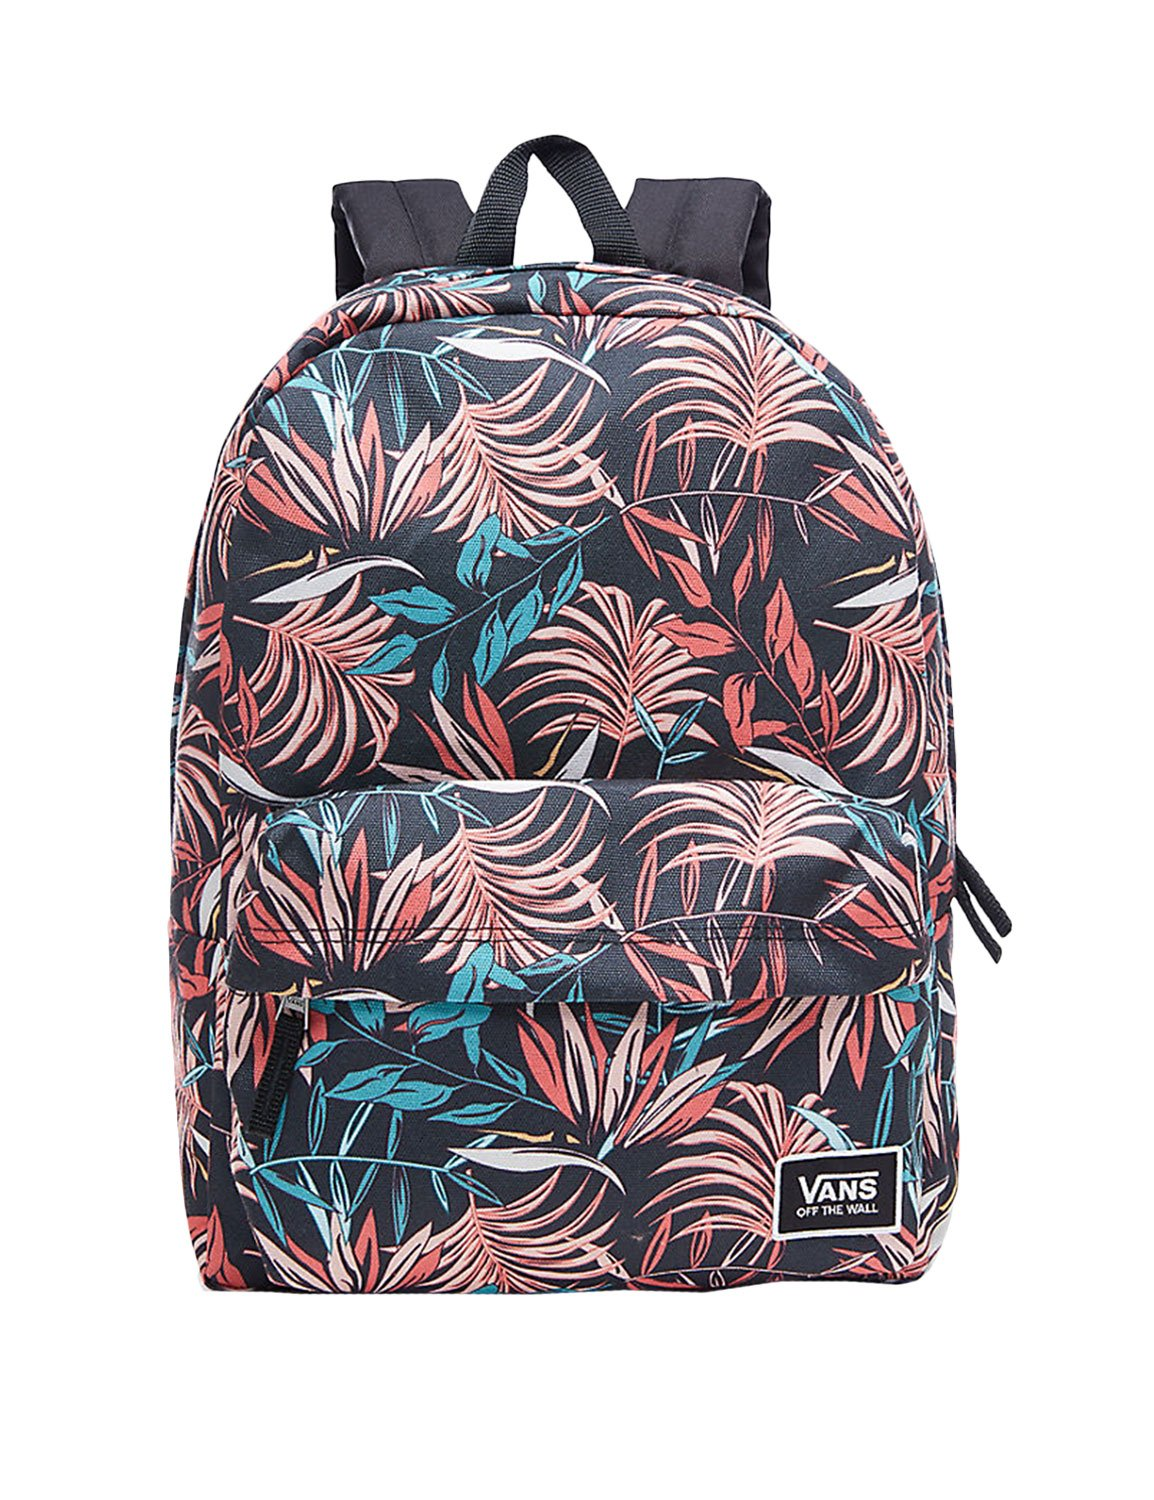 0b68078d5e3fca Vans Realm Classic Backpack Casual Daypack